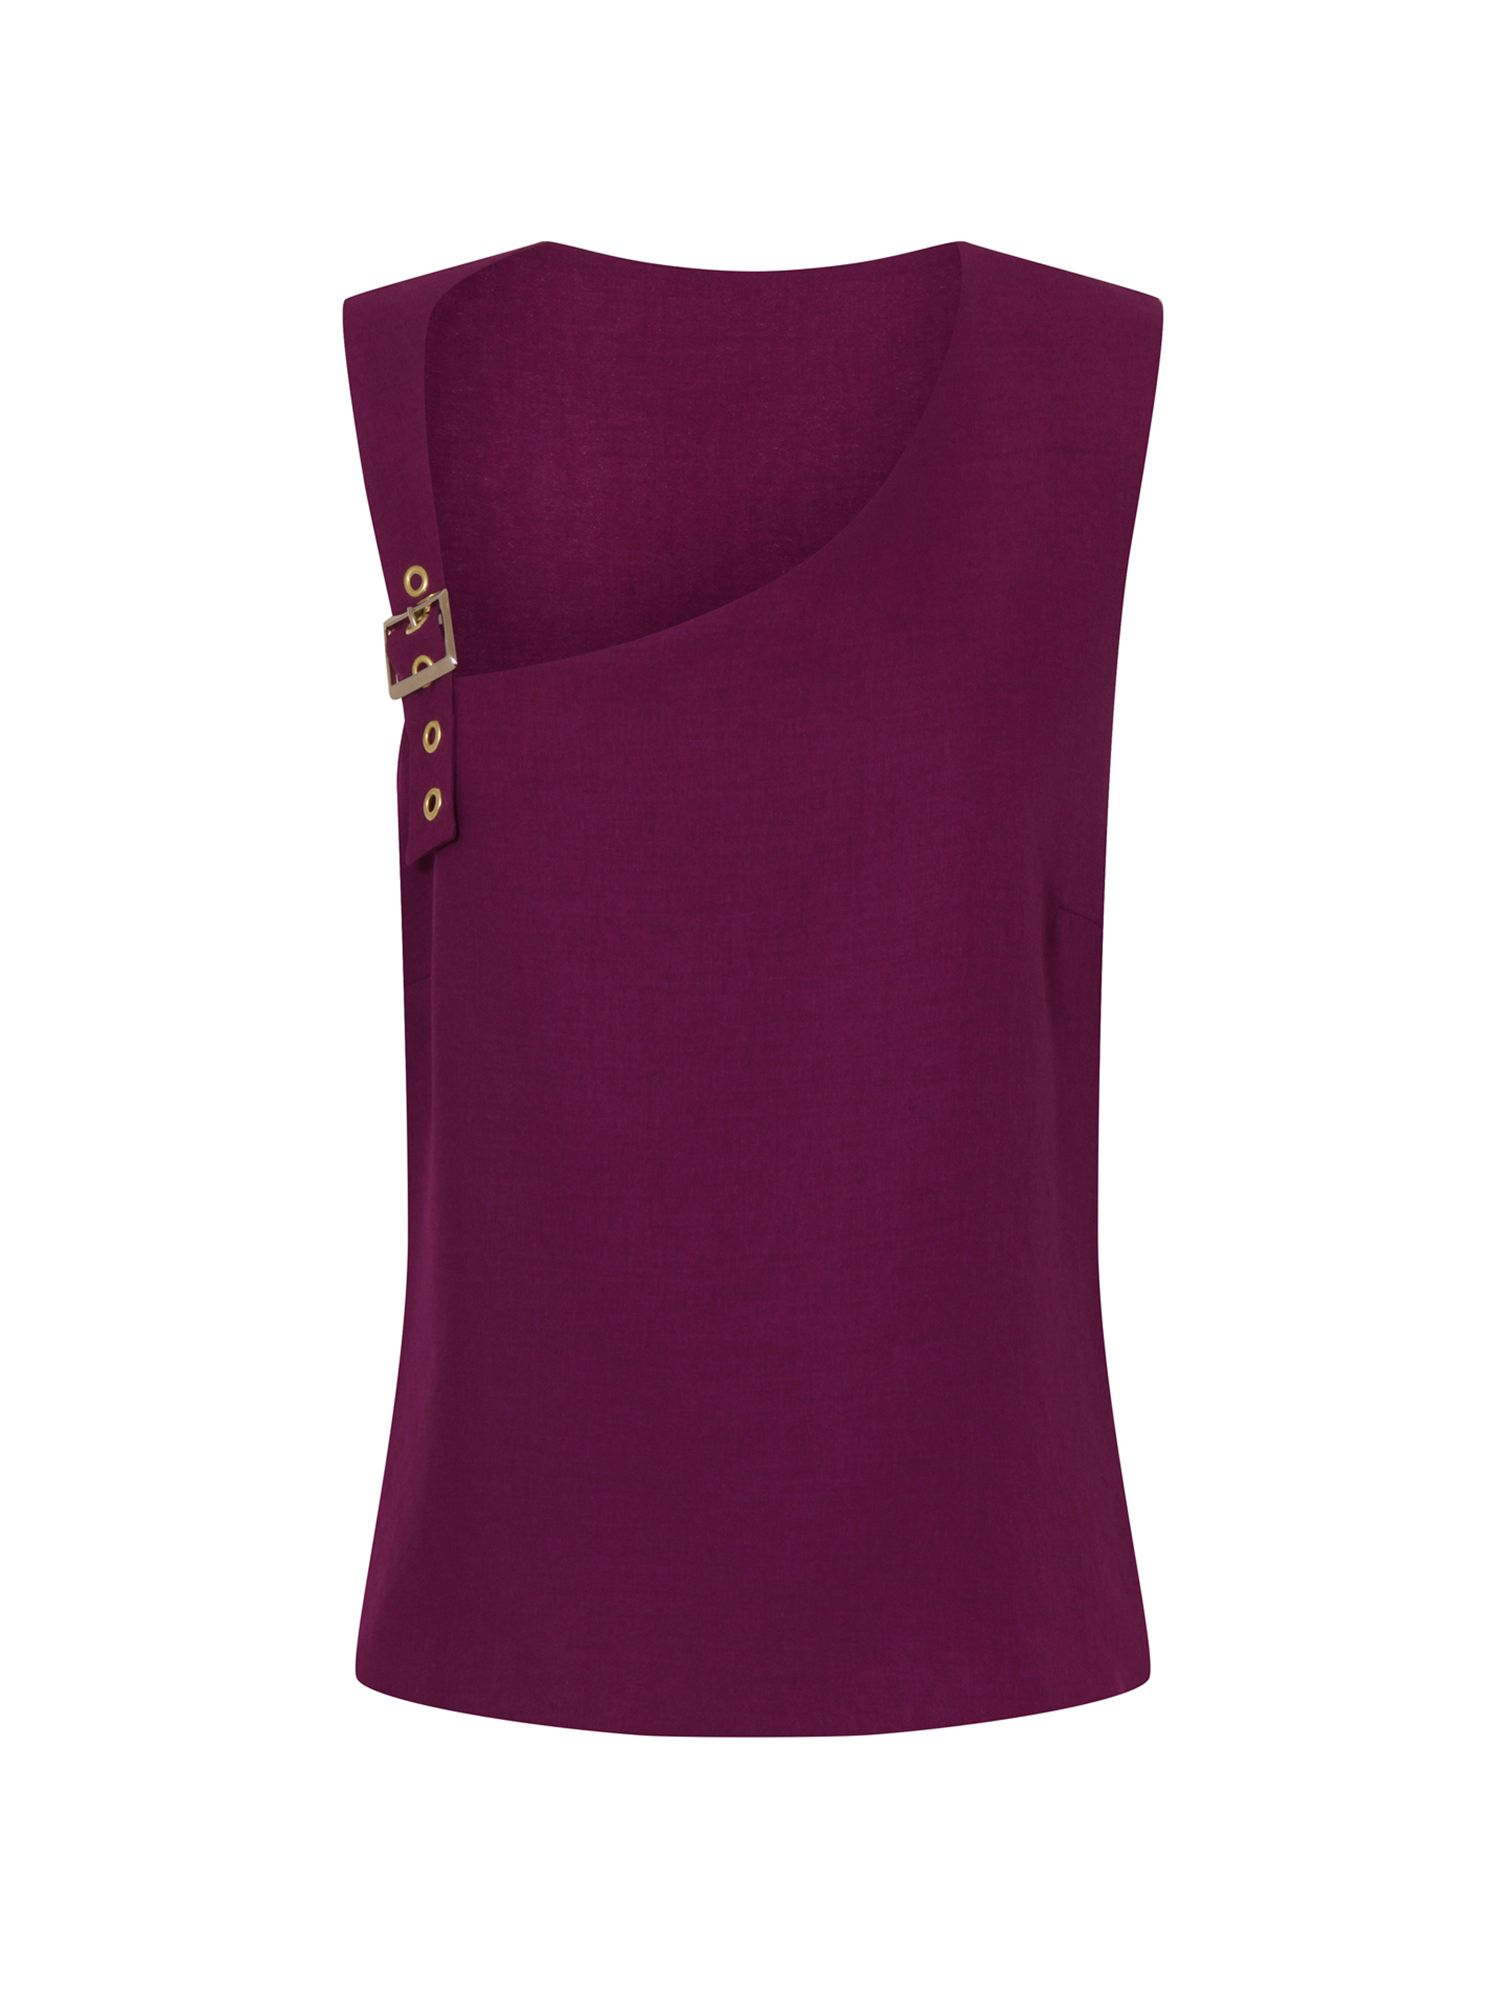 HotSquash Buckle Shoulder Top in CoolFresh Fabric, Purple